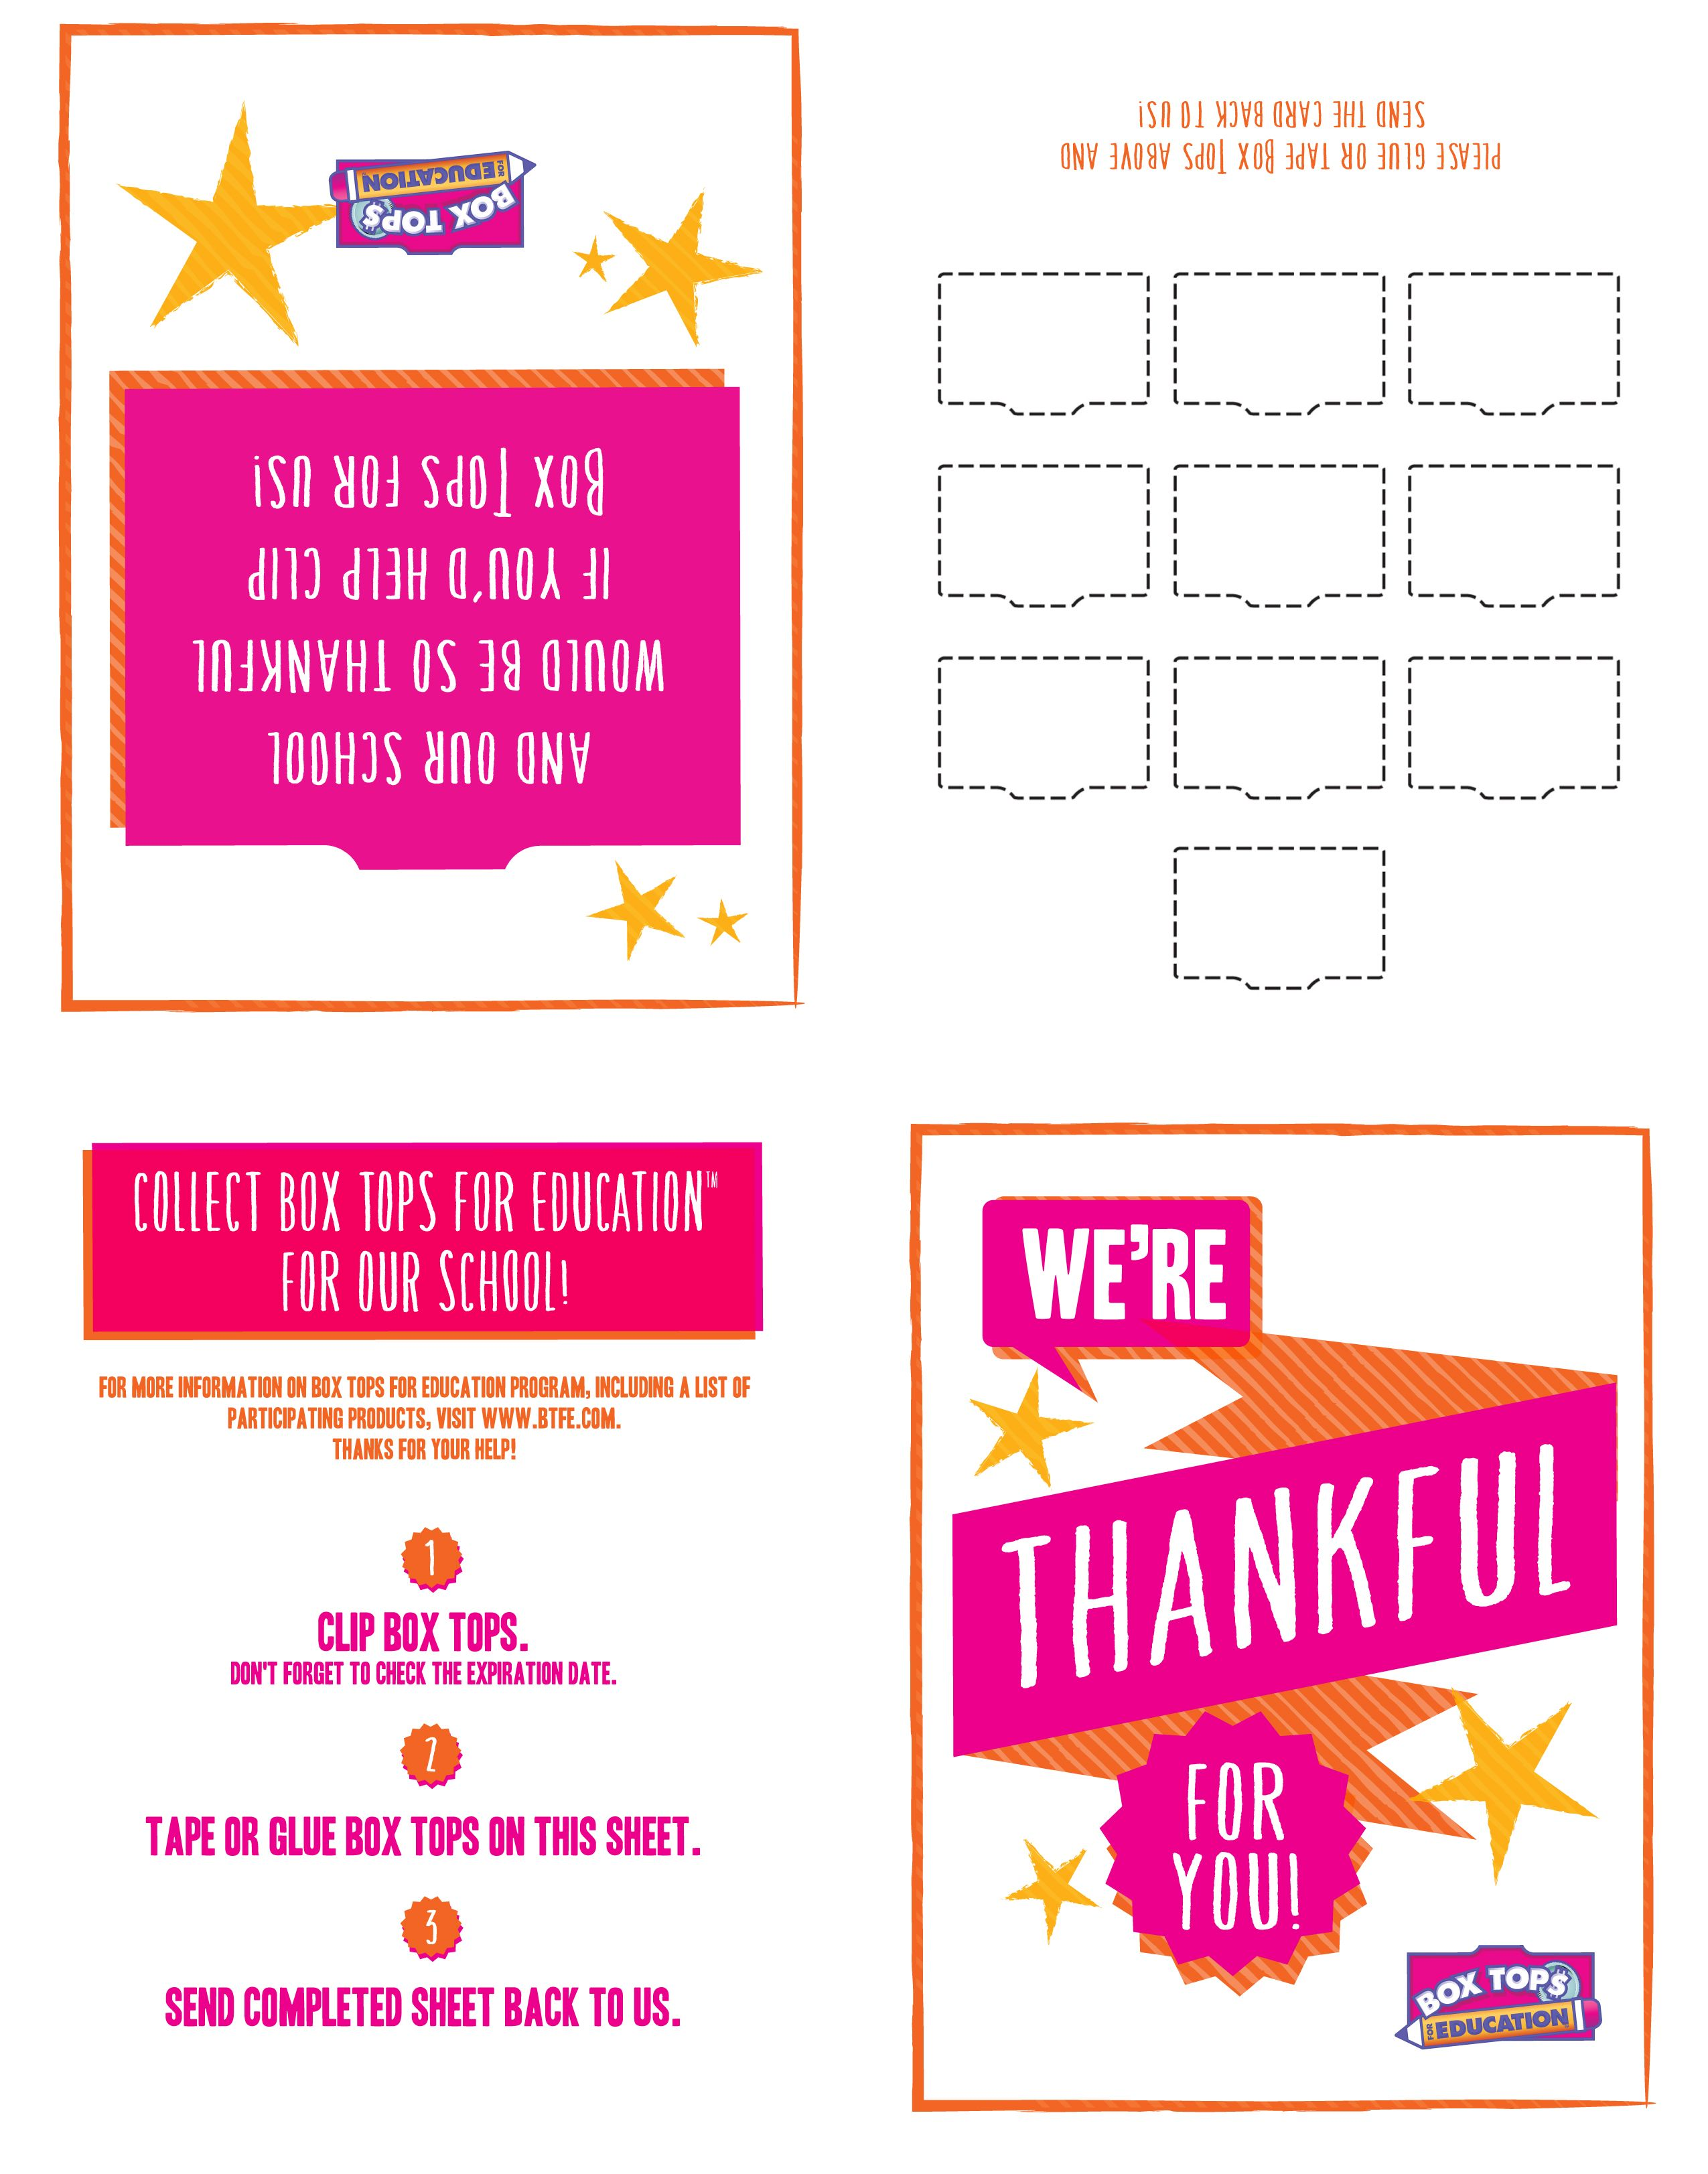 Just Print It Fold It And Share It This 10 Count Thank You Card Collection Sheet Is A Fun And